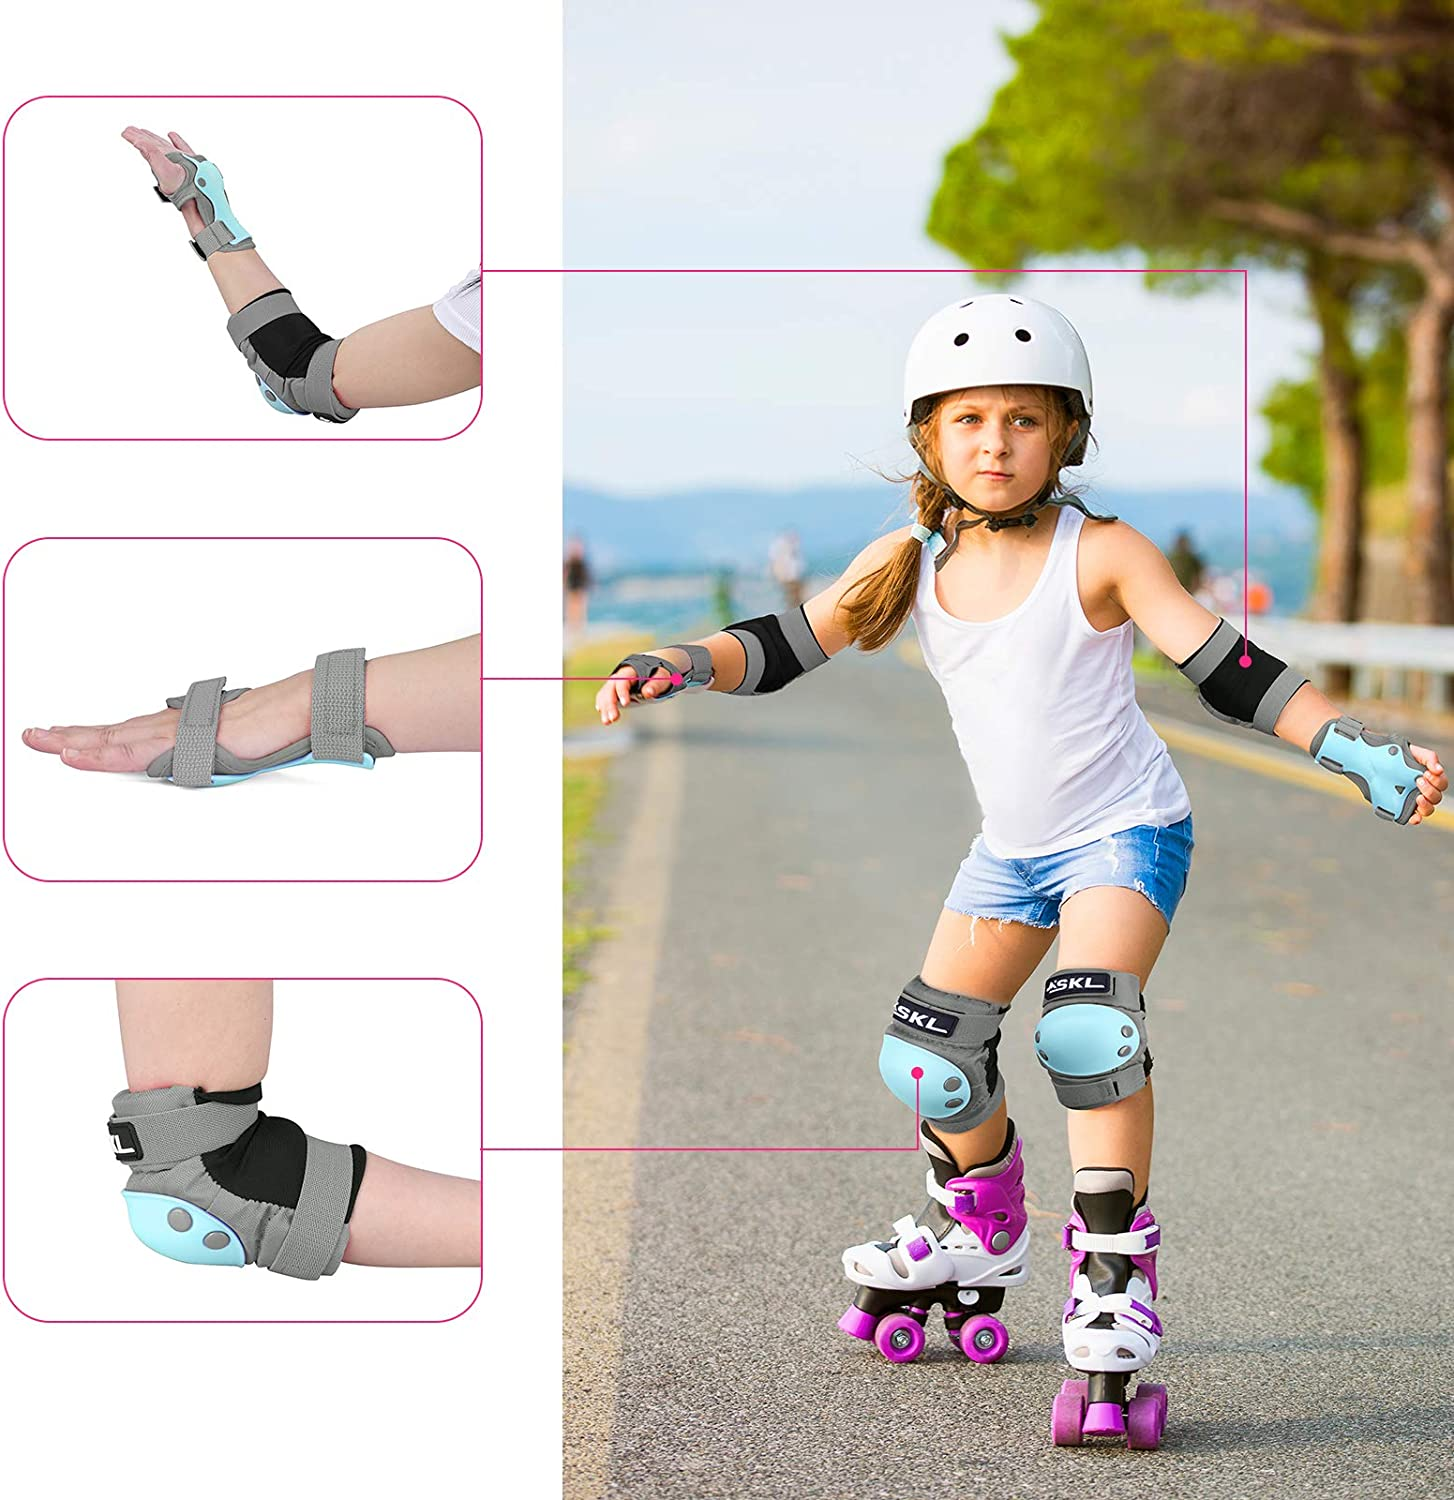 Elbow and Knee Pads Kids 6-13 Adjustable Strap for Skating Scooter Bike Riding Skateboard Cycling Rollerblading SKL Knee Pads for Kids Toddler 3 in 1 Protective Gear Set with Wrist Guards